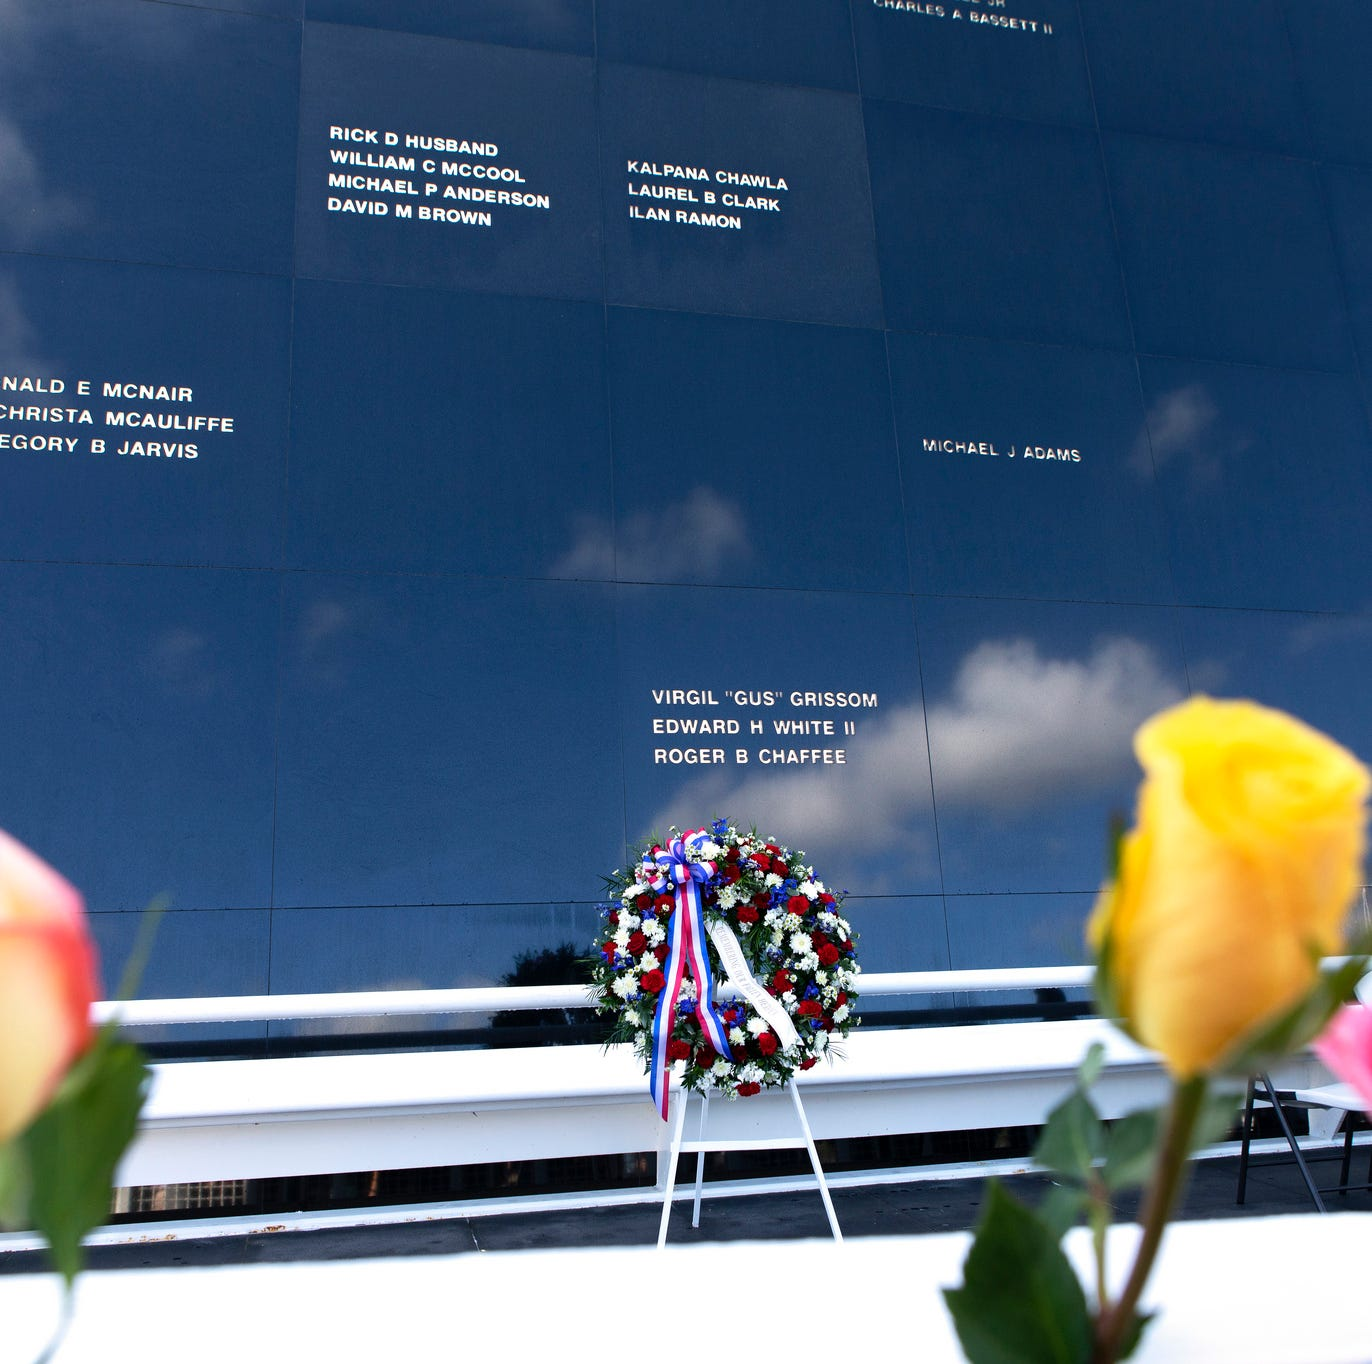 KSC memorial may honor more than just government astronauts